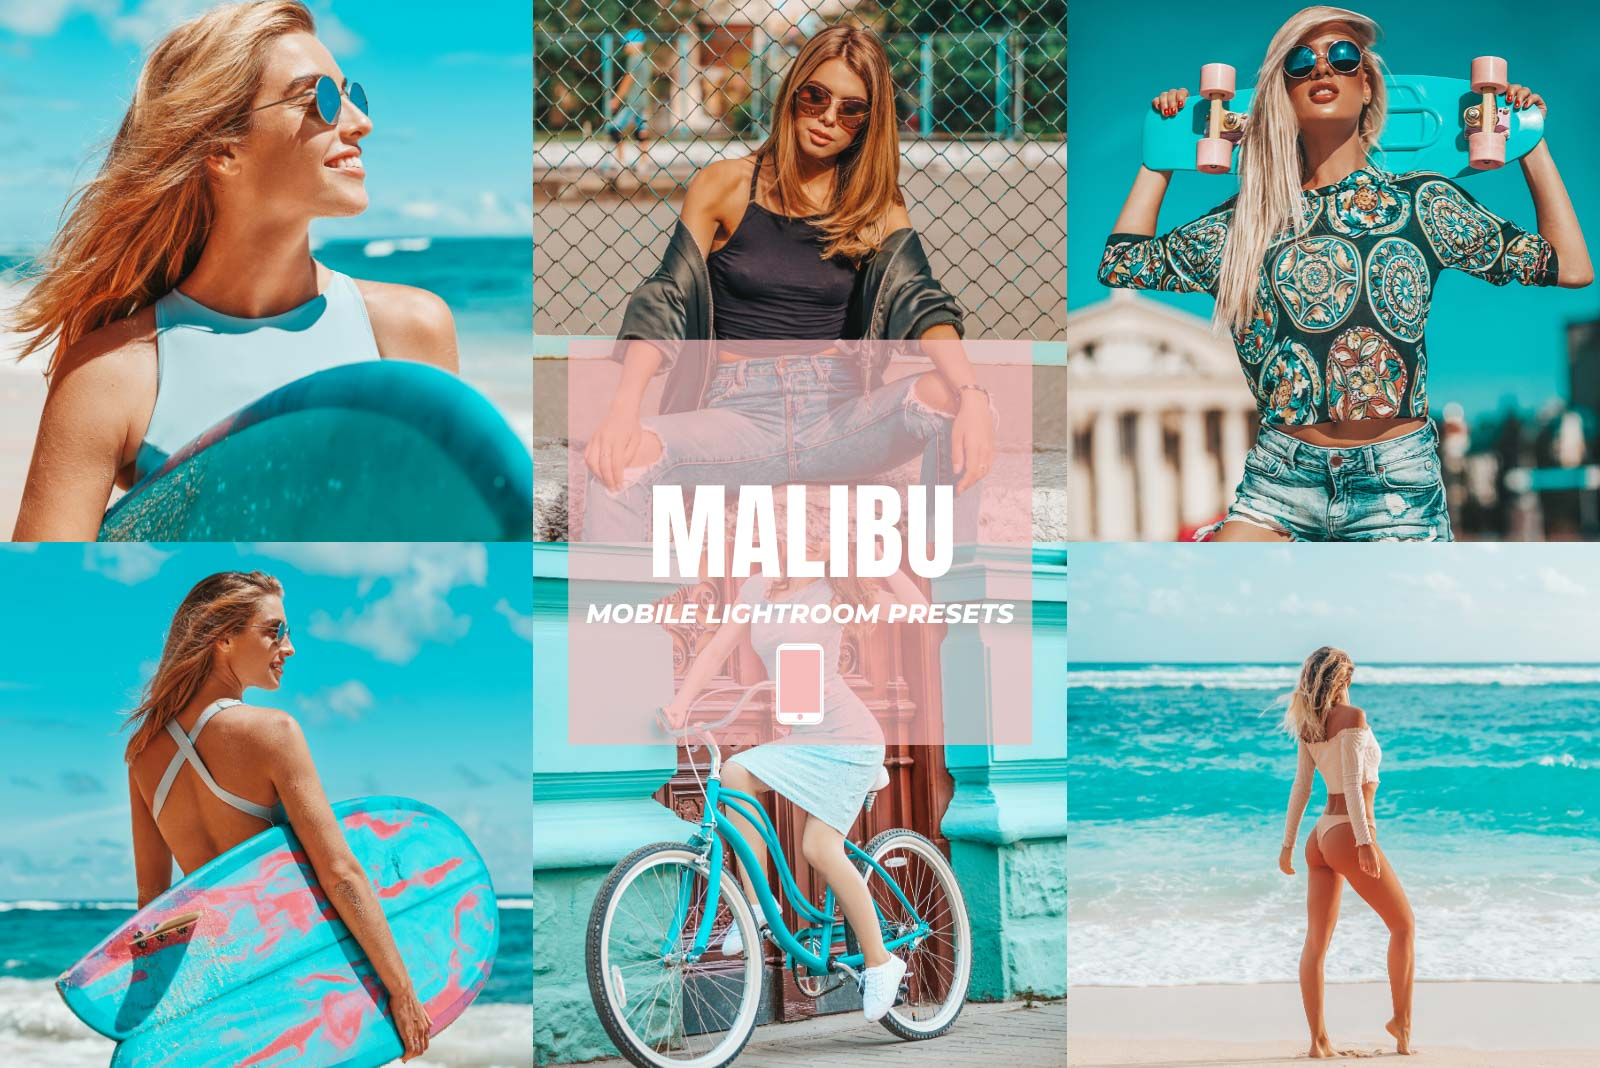 MALIBU MOBILE LIGHTROOM PRESETS by The Viral Presets